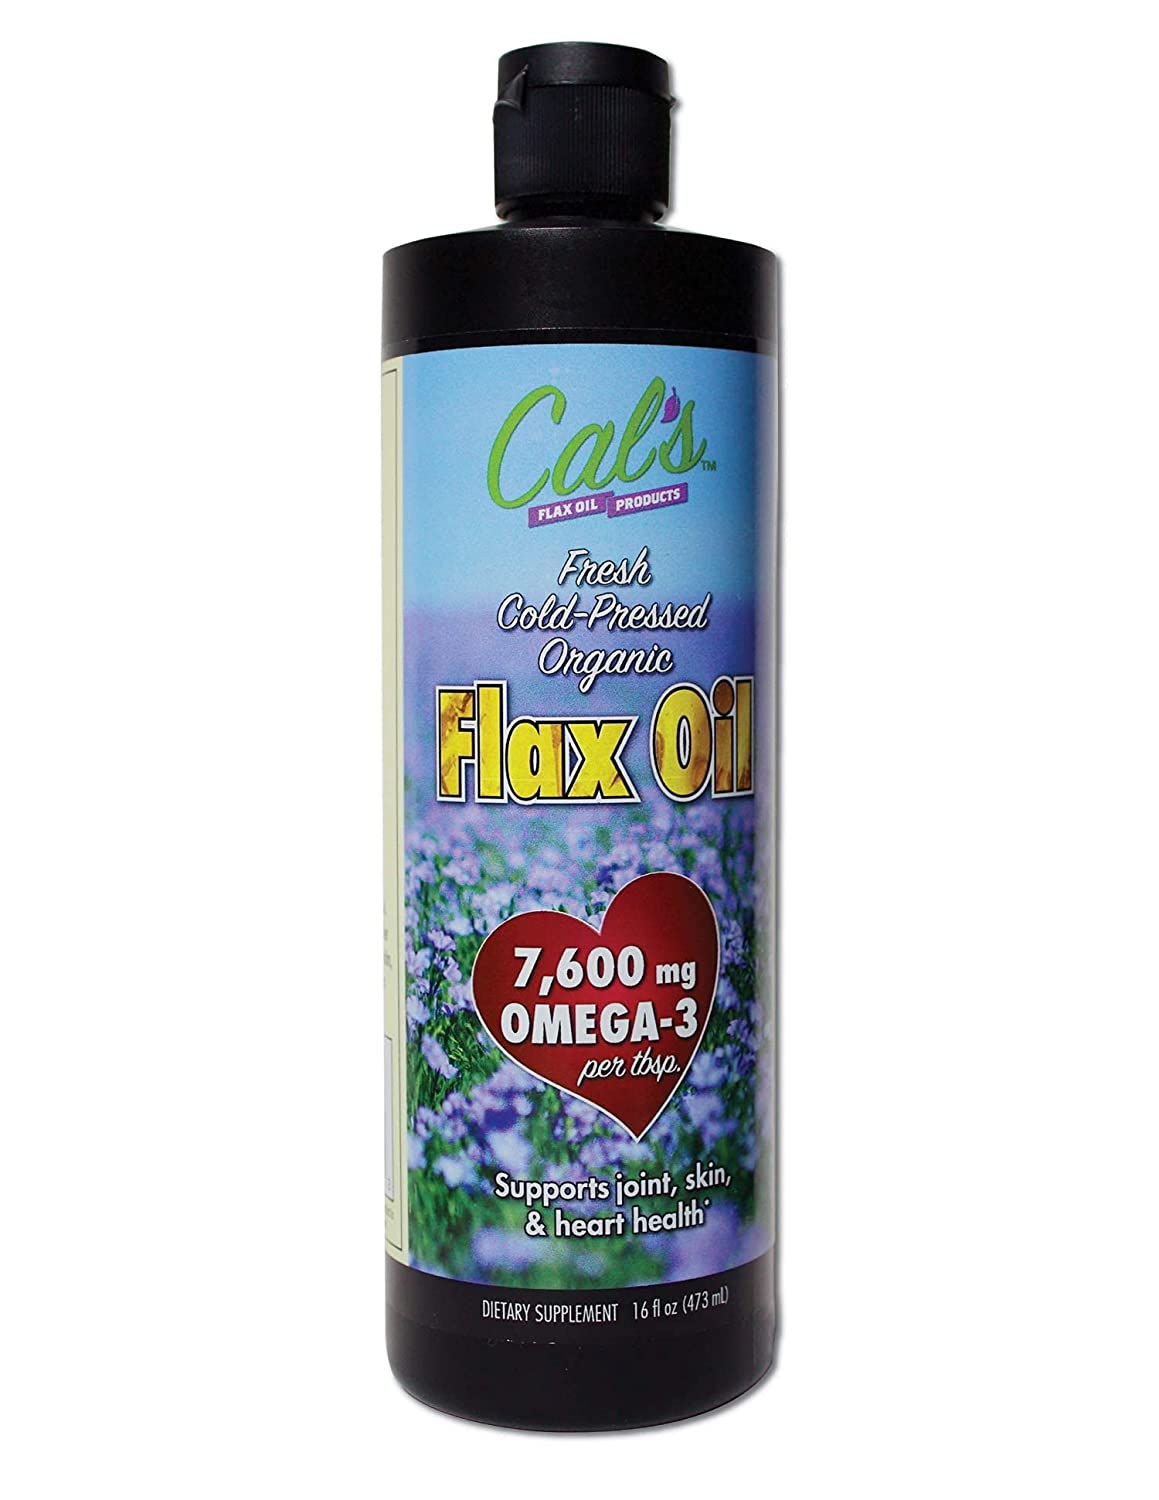 Cheap SALE Start Cal's Flax Oil Organic Pure Essential Unrefined F Cold-Pressed Mail order